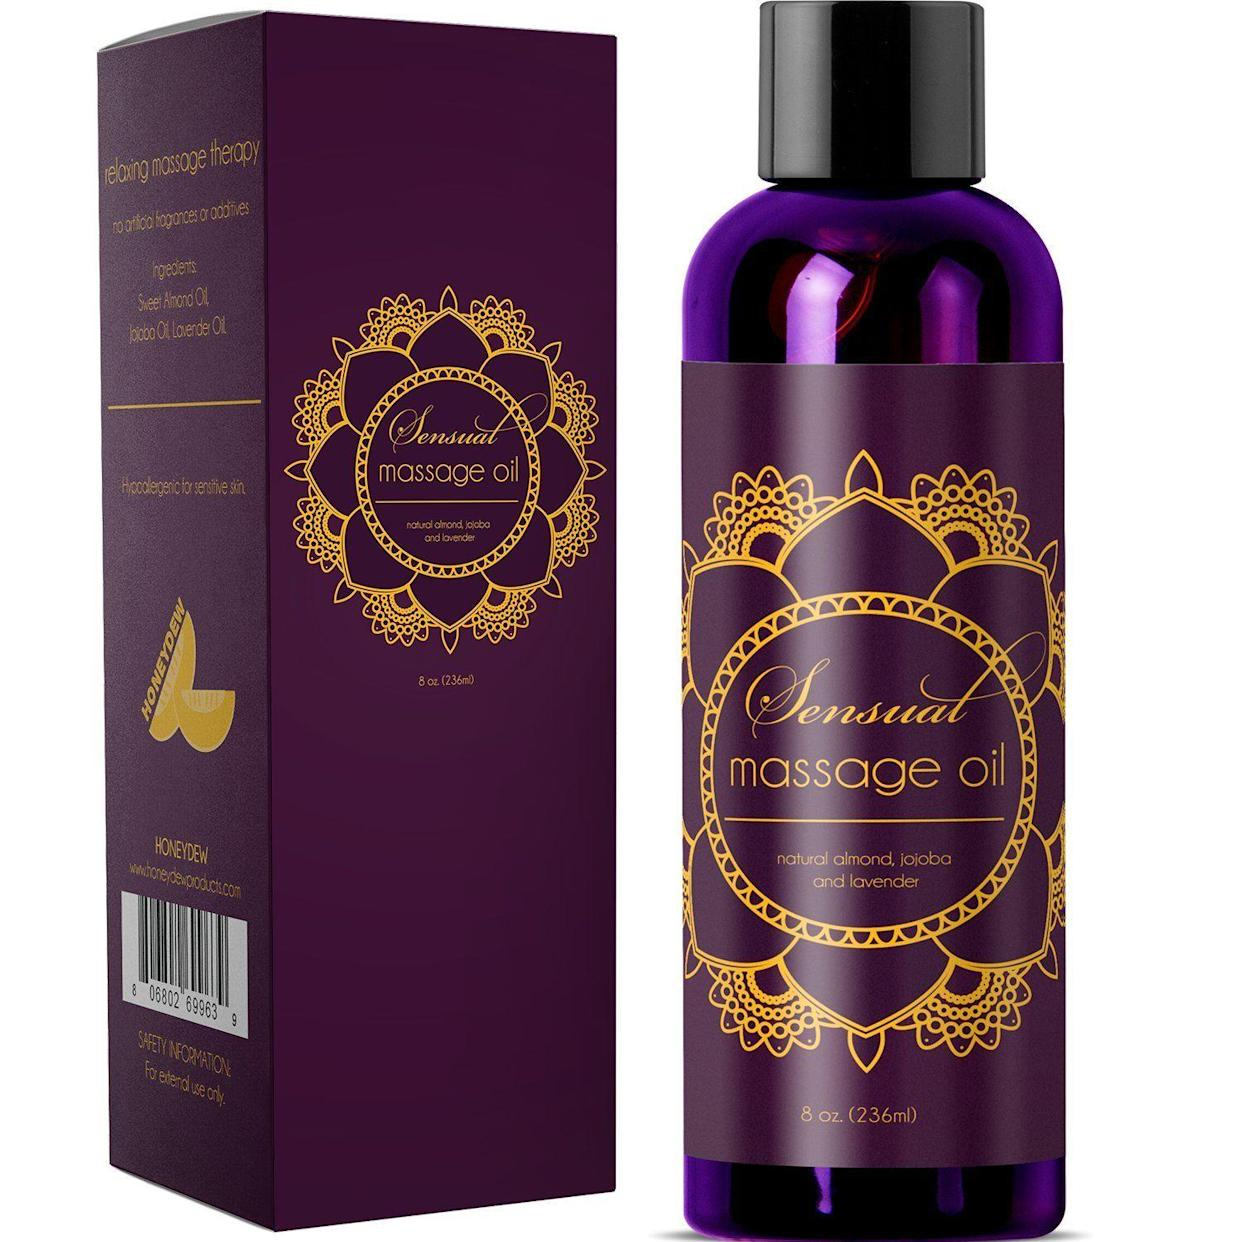 "<p><strong>The Gift: Sensual Massage Oil</strong><br>Use this best-selling Amazon's Choice massage oil made from a luxe blend of Bulgarian lavender oil, Jojoba, and almond extract for sensual or practical occasions — the glowing reviews range from, ""This is my all time favorite sensual massage oil! I love the way it feels - smooth, just the right amount of slippery, soaks in slow and makes my skin feel great,"" to, ""Used this with my girlfriend and we both love it! It was calming, relaxing, and smelled great.""</p> <br> <br> <strong>Maple Holistics</strong> Honeydew Sensual Massage Oil with Pure Lavender Oil, $11.35, available at <a href=""https://www.amazon.com/Sensual-Massage-Pure-Lavender-Hypoallergenic/dp/B019FW8PA0/ref=sr_1_2_a_it?ie=UTF8&qid=1548274330&sr=8-2-spons&keywords=sensual+massage+oil&psc=1"" rel=""nofollow noopener"" target=""_blank"" data-ylk=""slk:Amazon"" class=""link rapid-noclick-resp"">Amazon</a>"